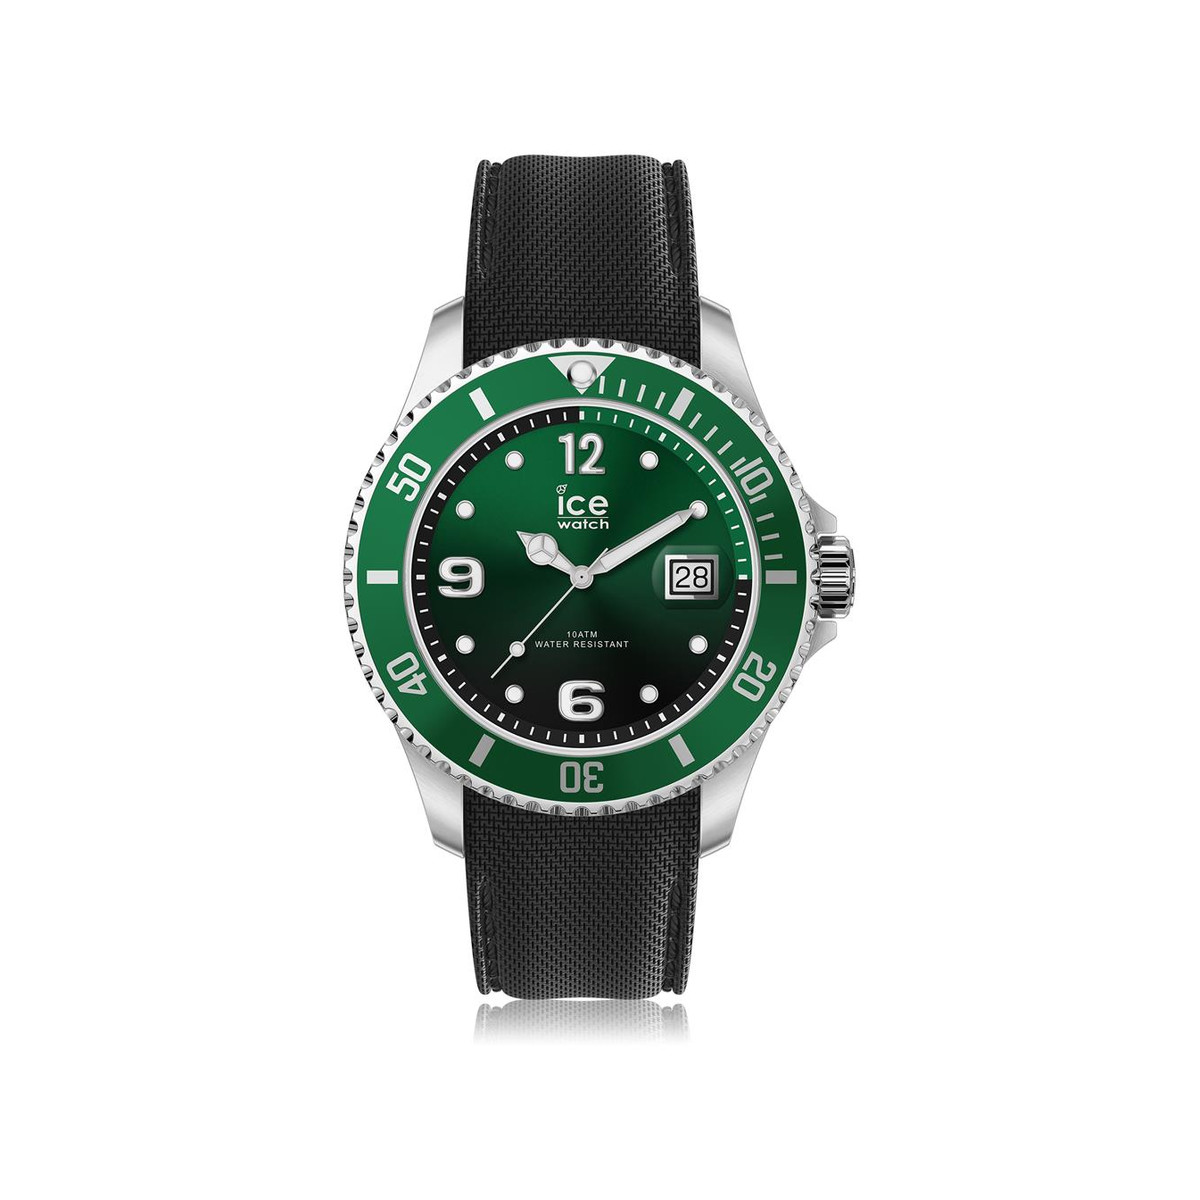 Vert Silicone Montre Homme Médium Watch Ice 4q3ARL5j